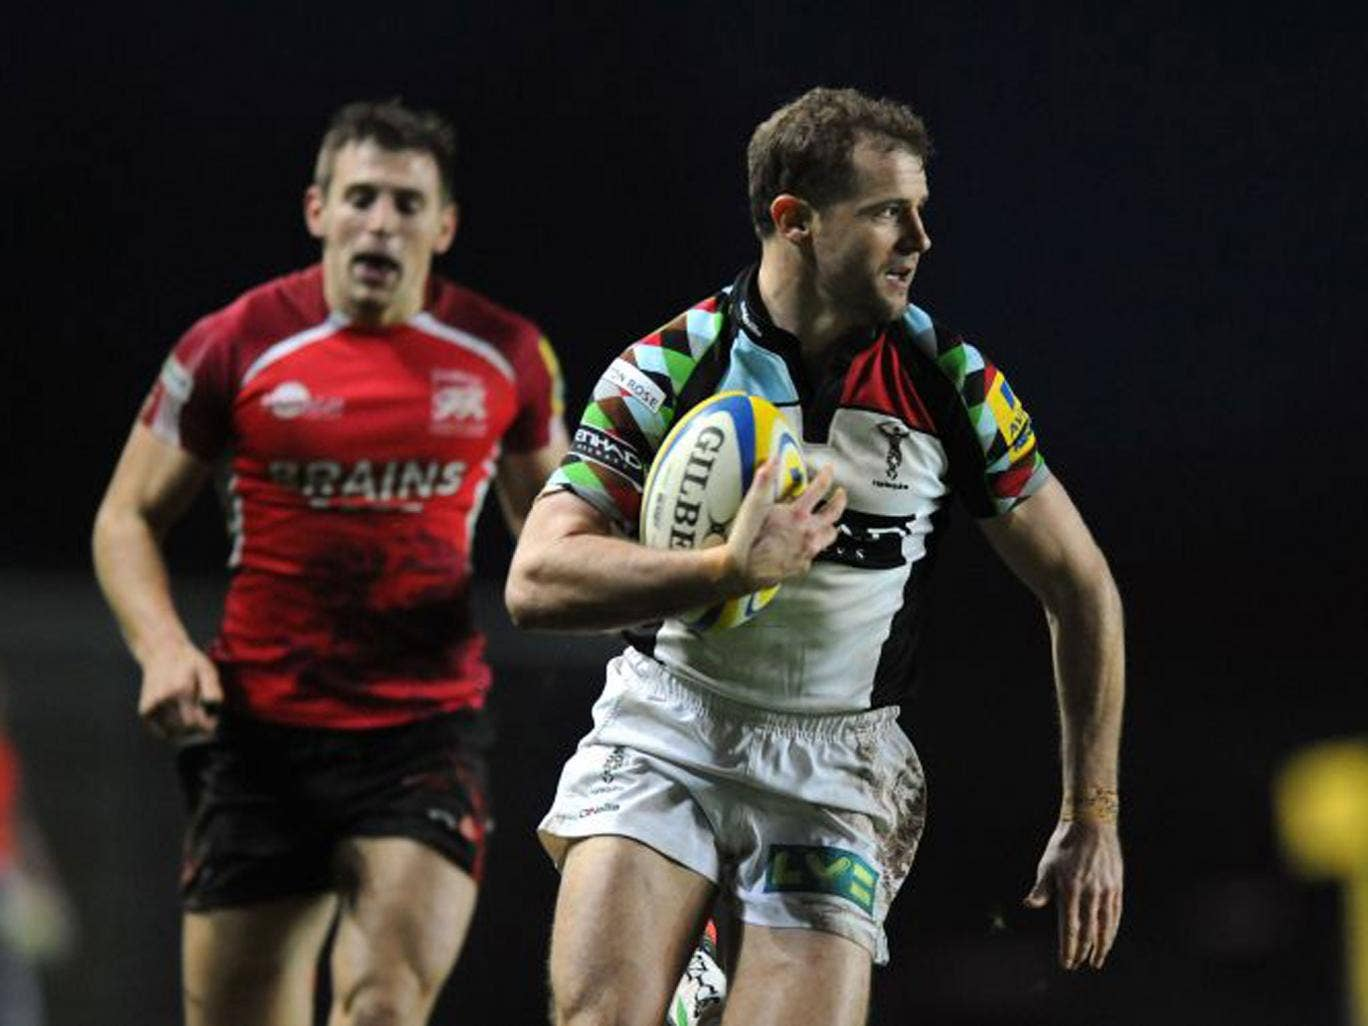 Nick Evans goes through to score Harlequins' fourth try